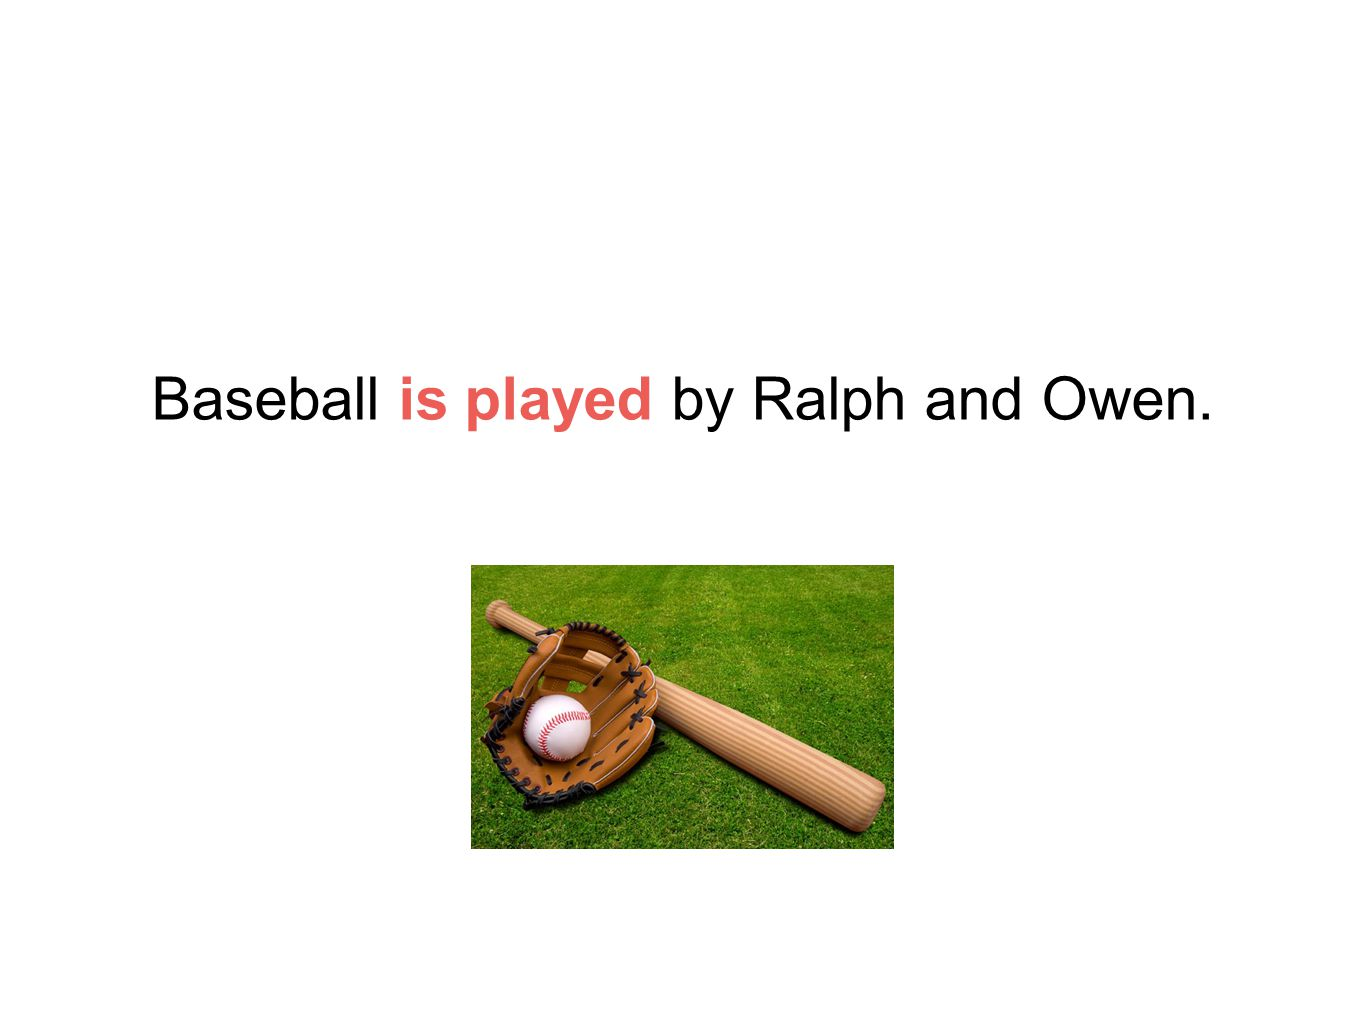 Baseball is played by Ralph and Owen.